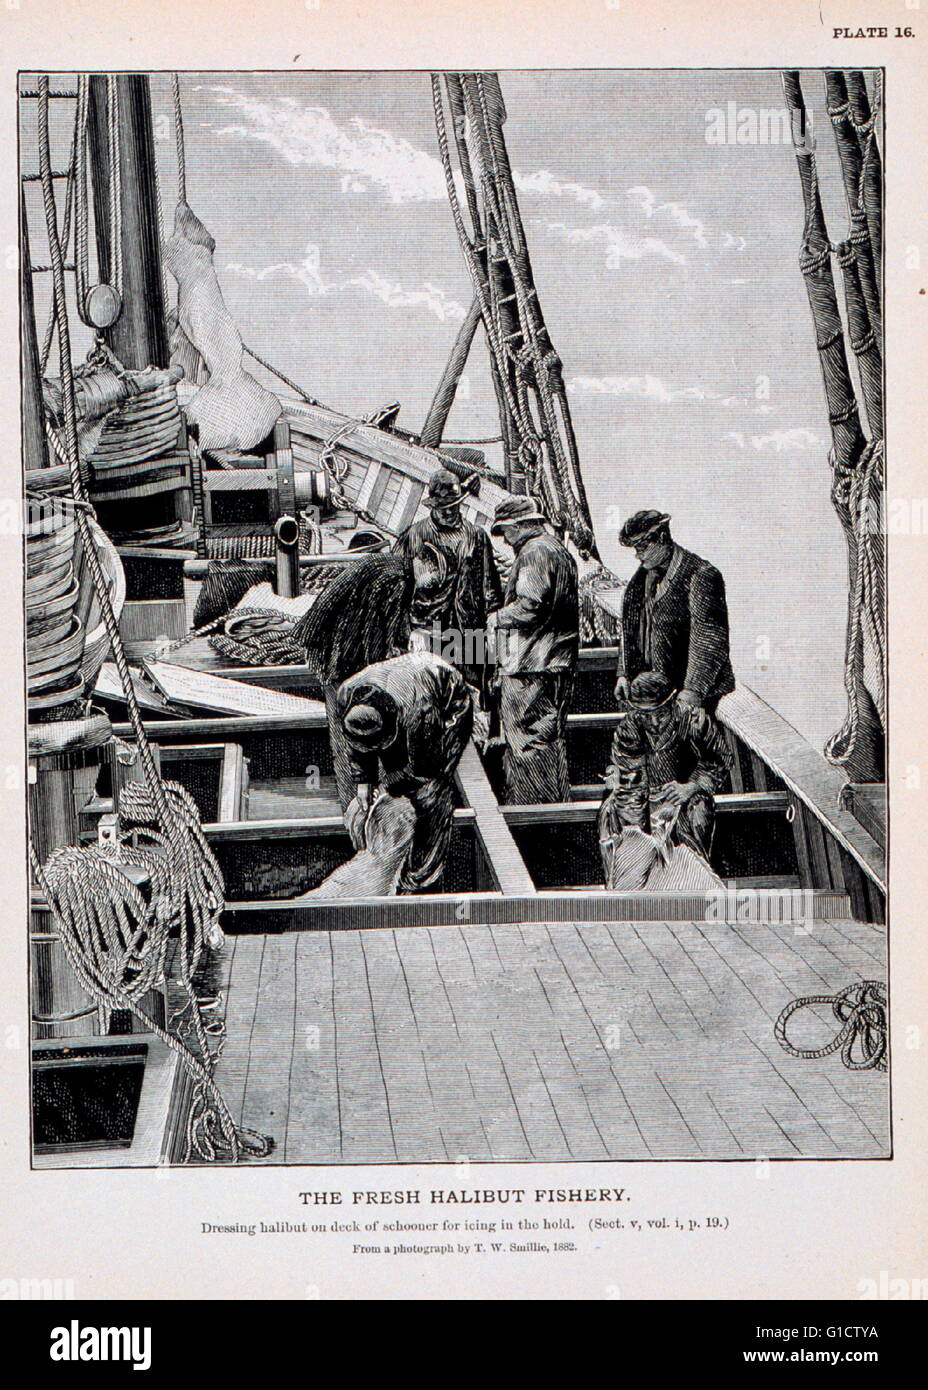 Dressing halibut on deck of schooner for icing in the hold. 1920 - Stock Image